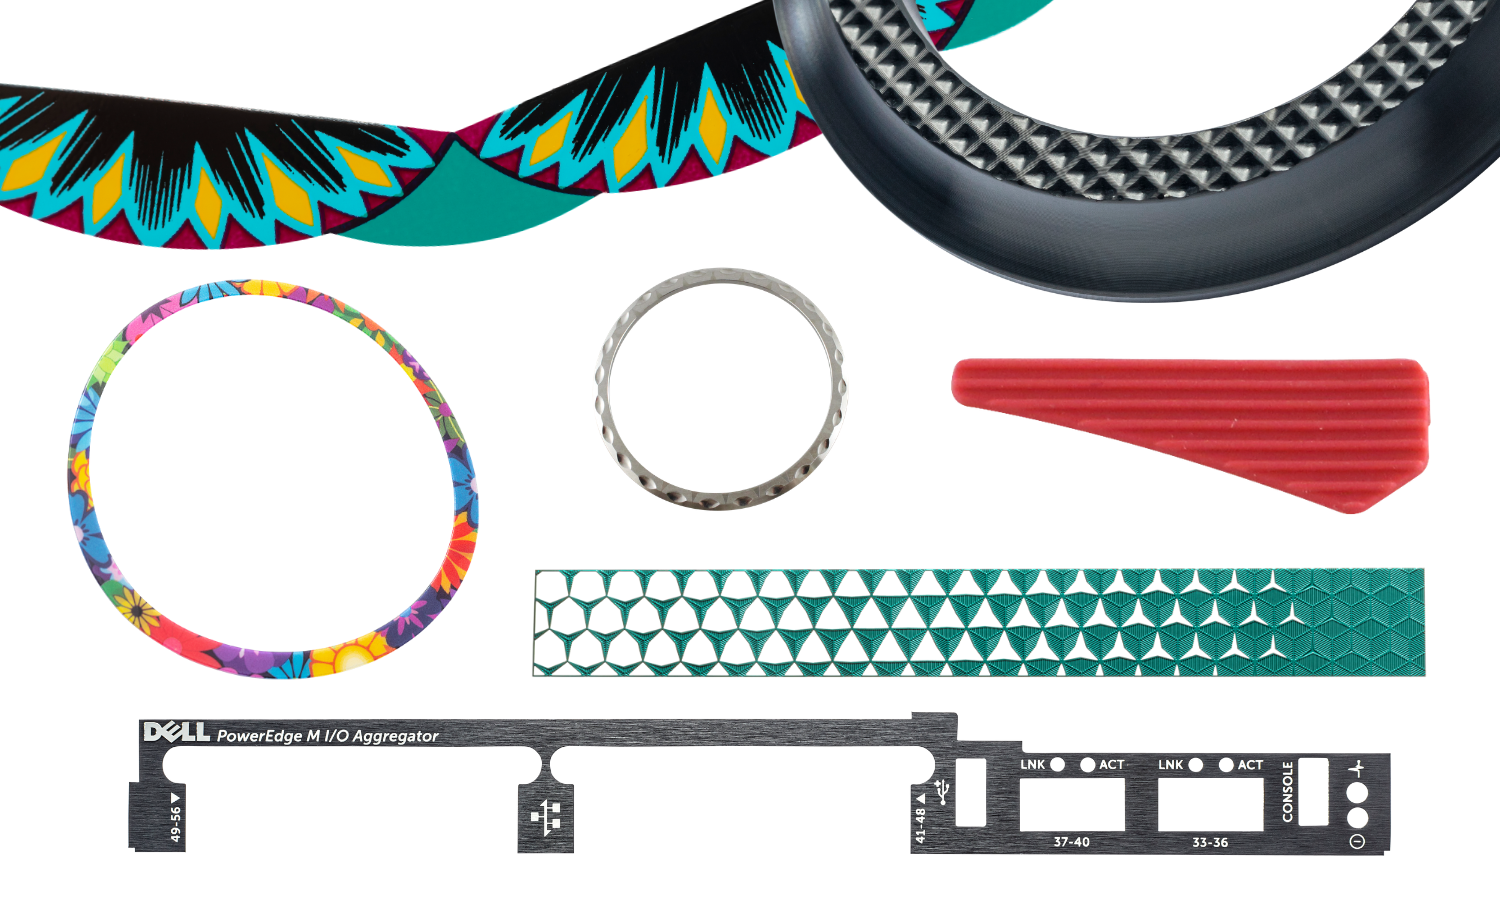 collage of parts - chrome circular ring, green triangle geometric pattern, floral circular ring, red rubber triangle, black knurled knob collar